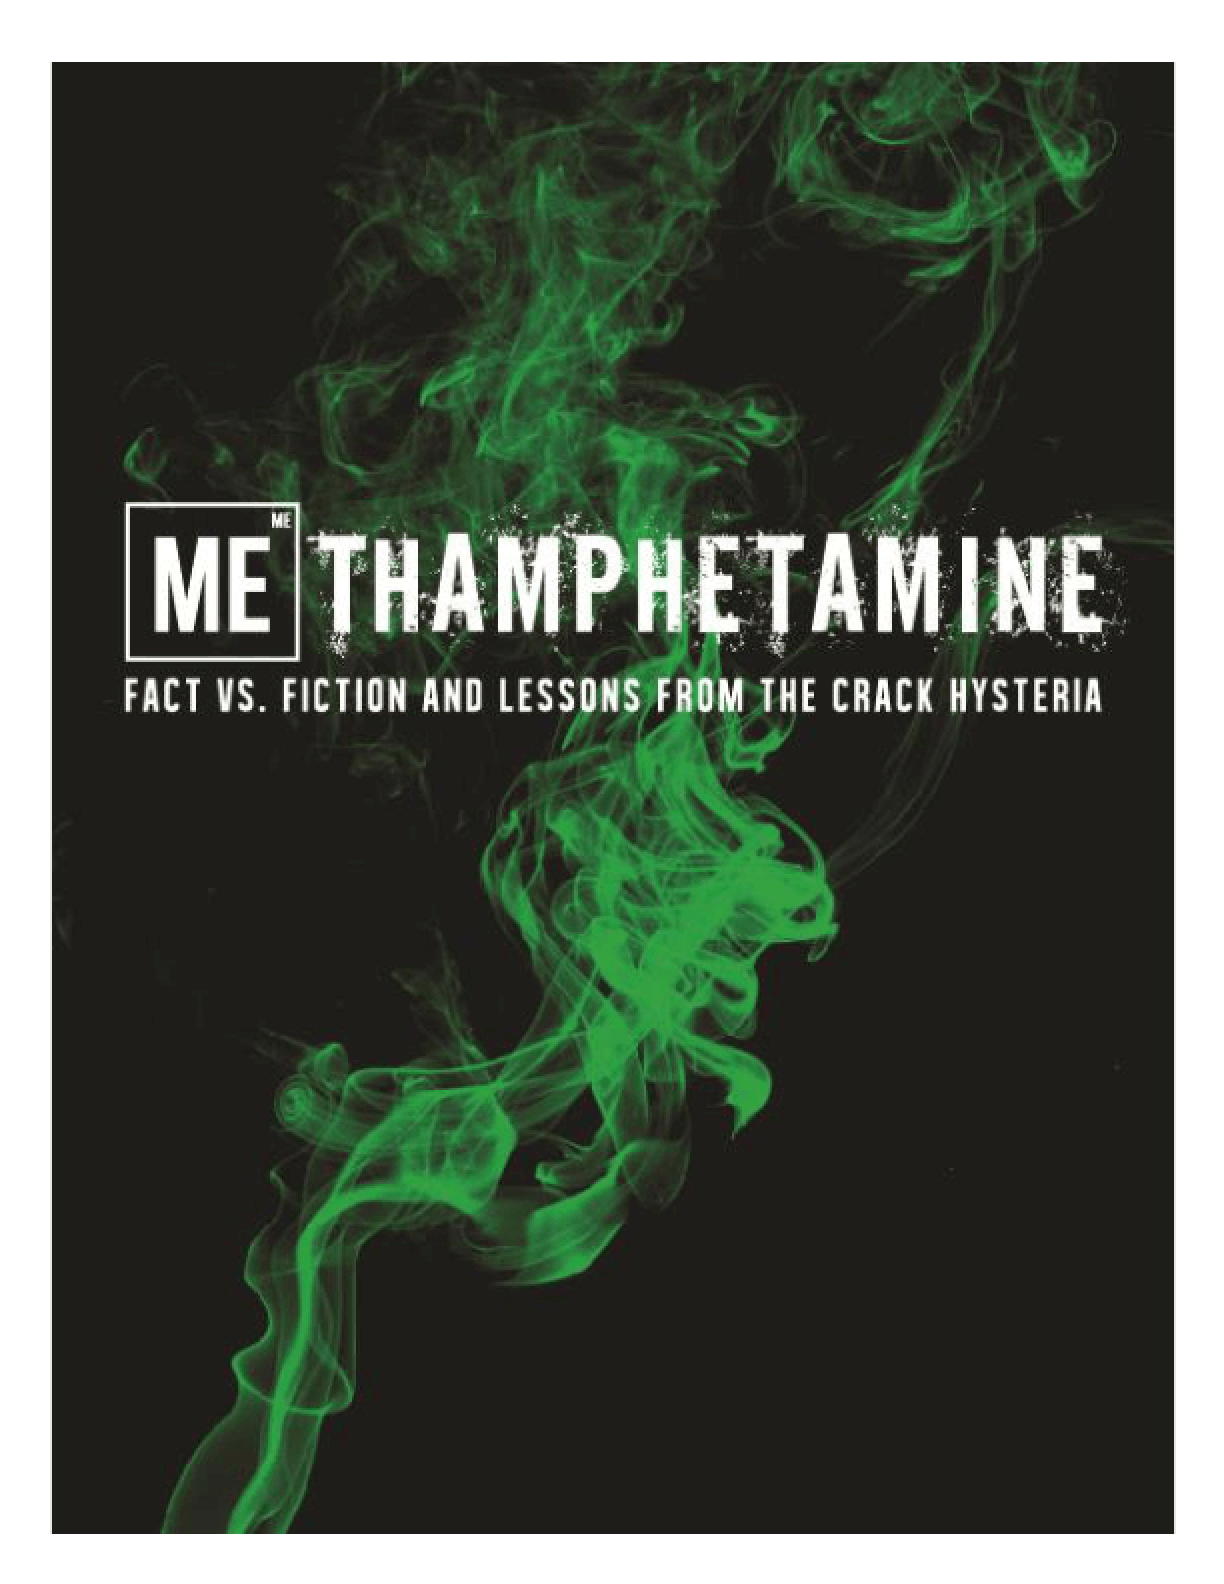 Methamphetamine: Fact vs. Fiction and Lessons from the Crack Hysteria